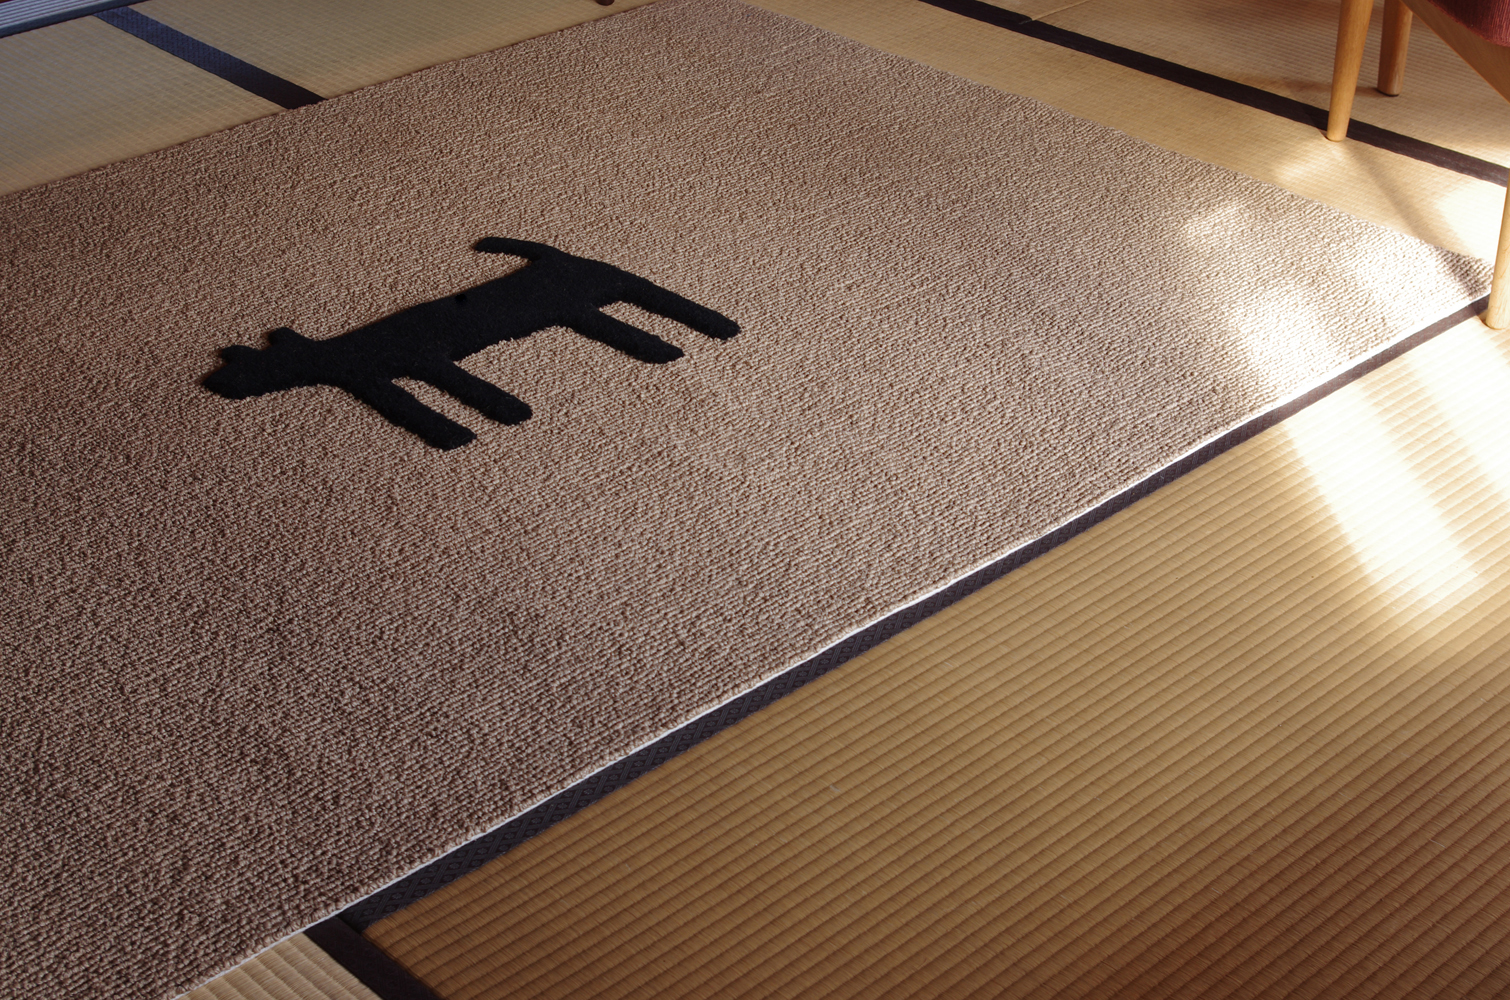 Fstyle rugmat HOUSE-2